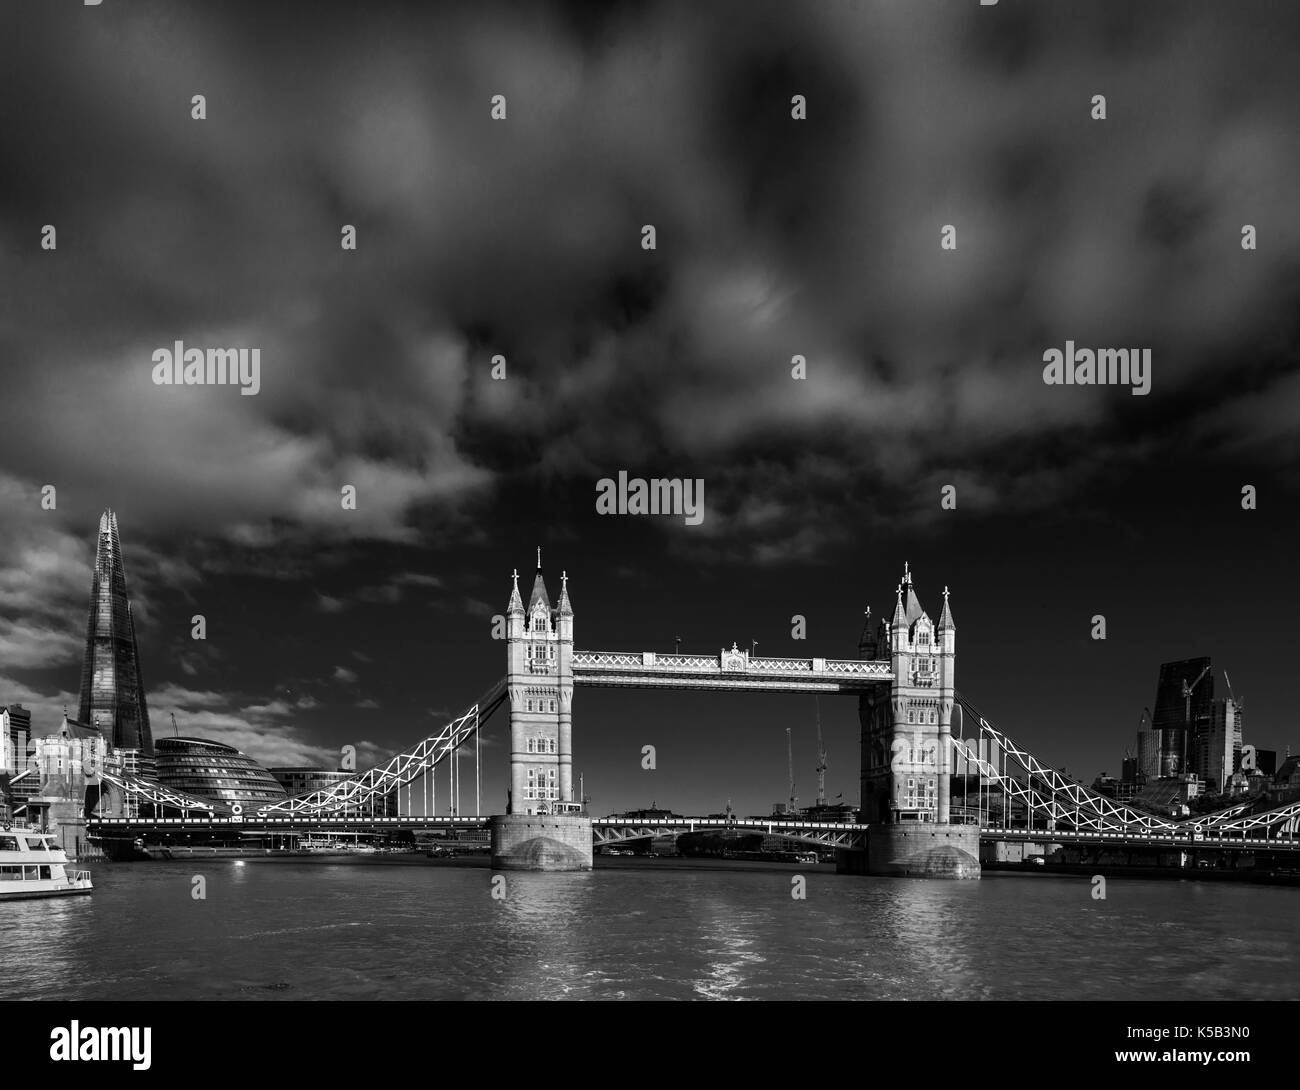 Famous Tower Bridge on the river Thames is iconic symbol of London. - Stock Image